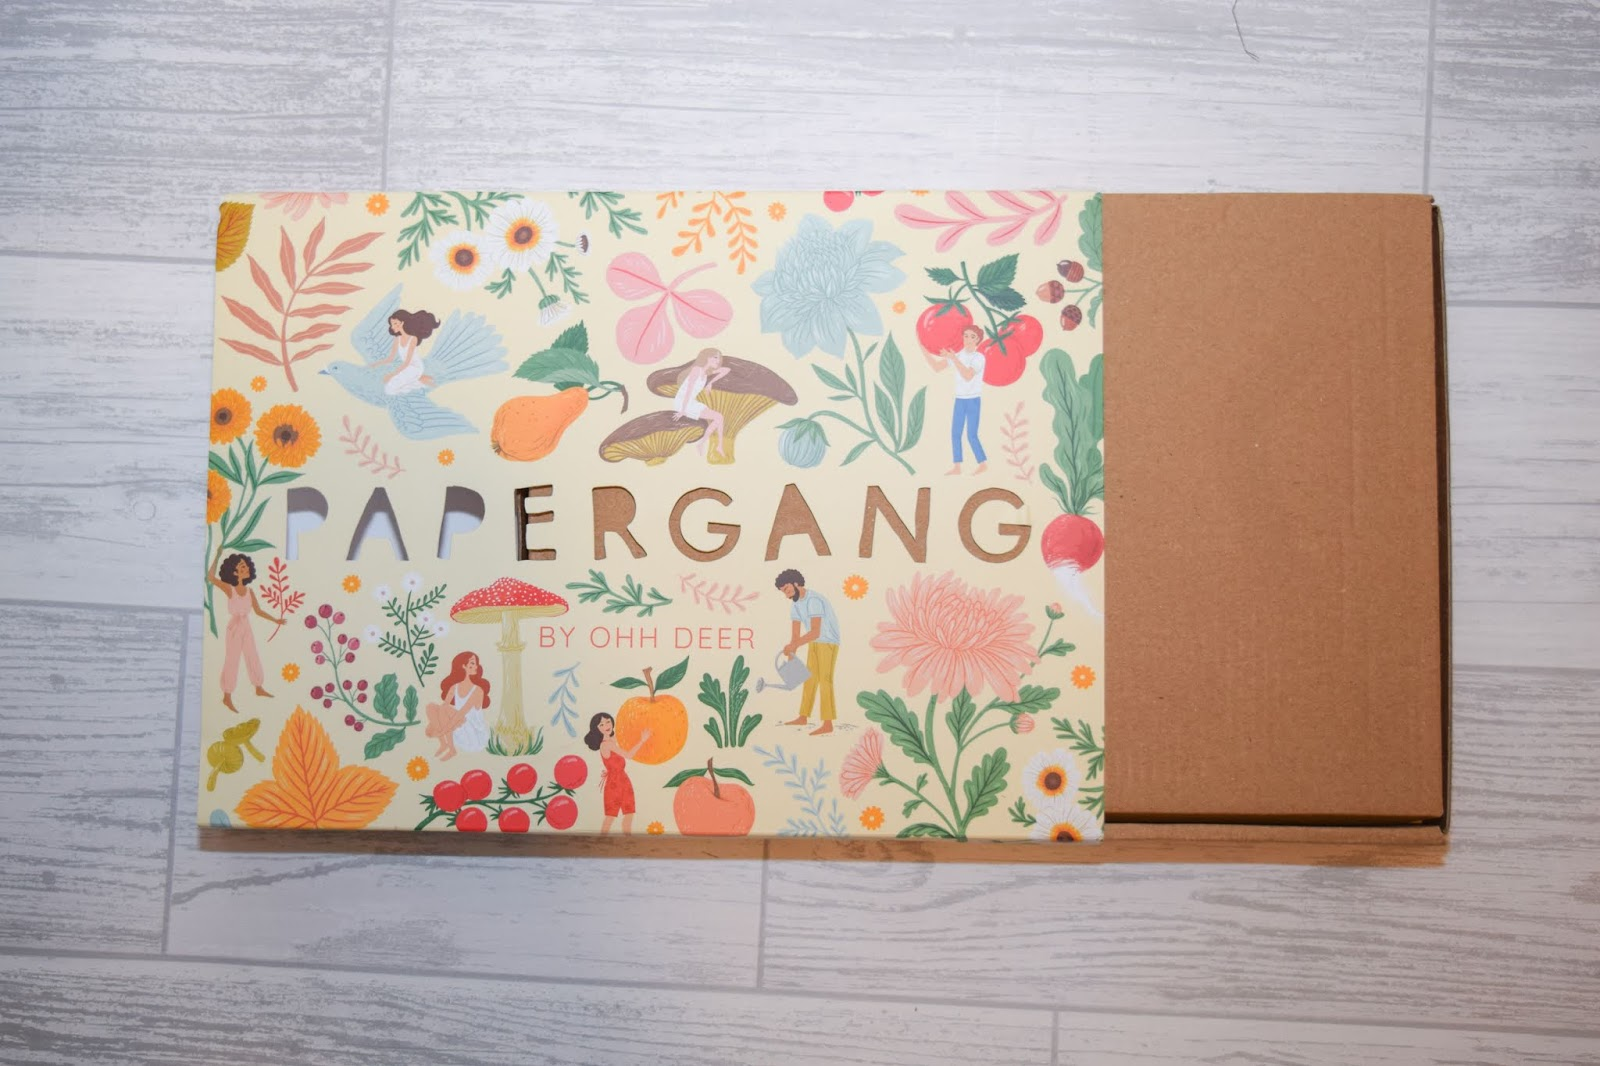 A box sleeve half pulled away with a vegetable and wildflower print on the front.